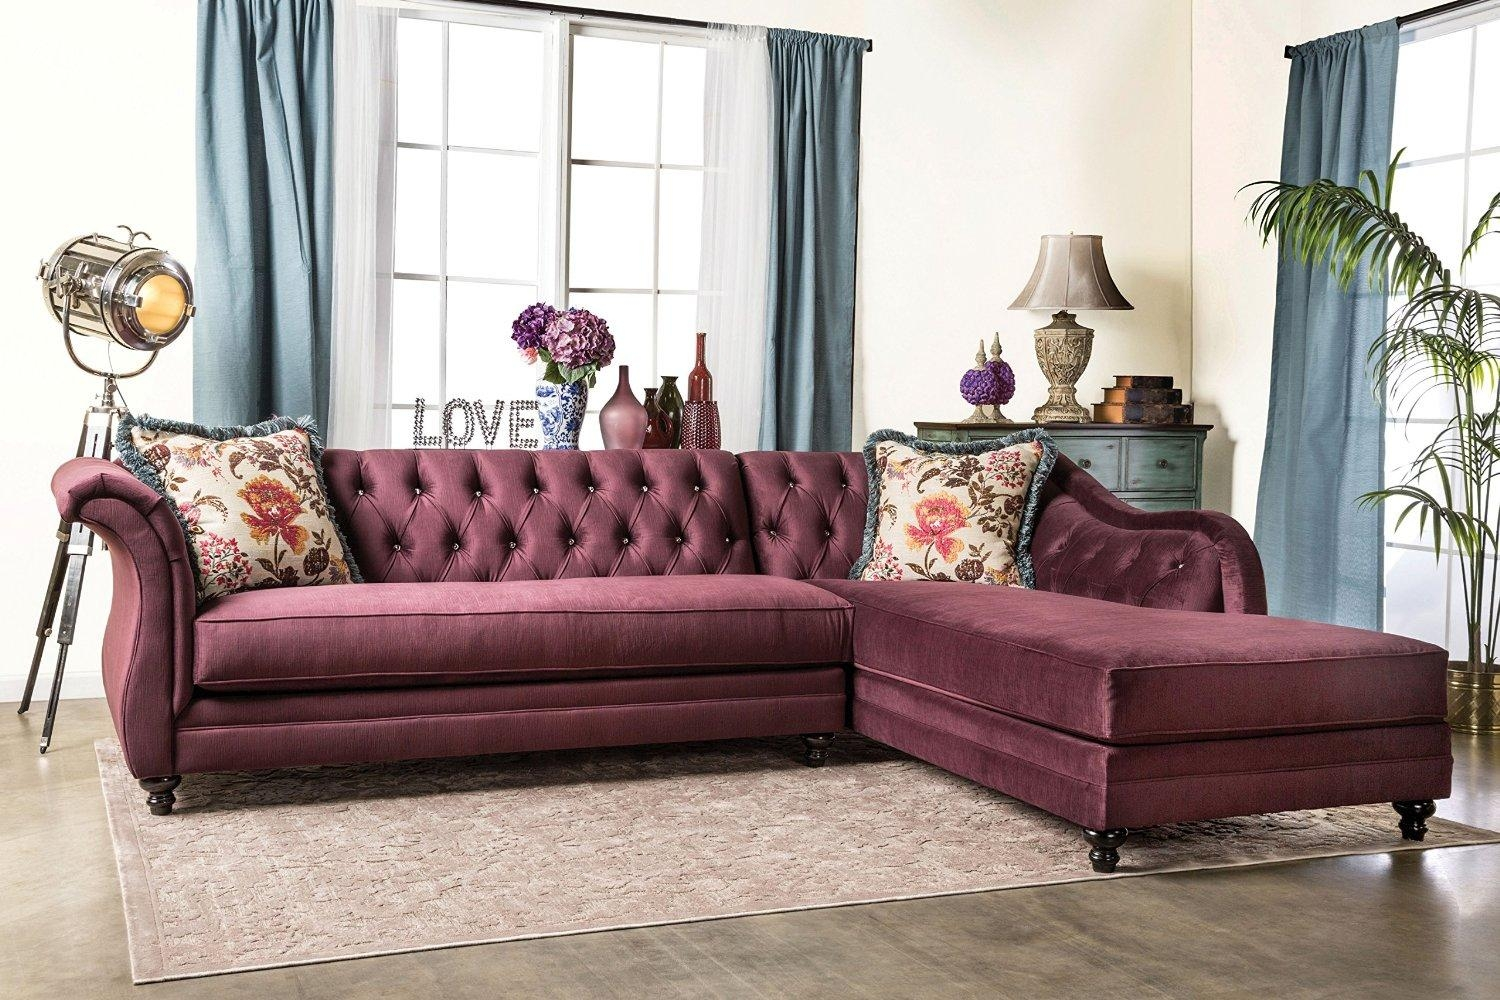 25 Best Chesterfield Sofas To Buy In 2017 in Purple Chesterfield Sofas